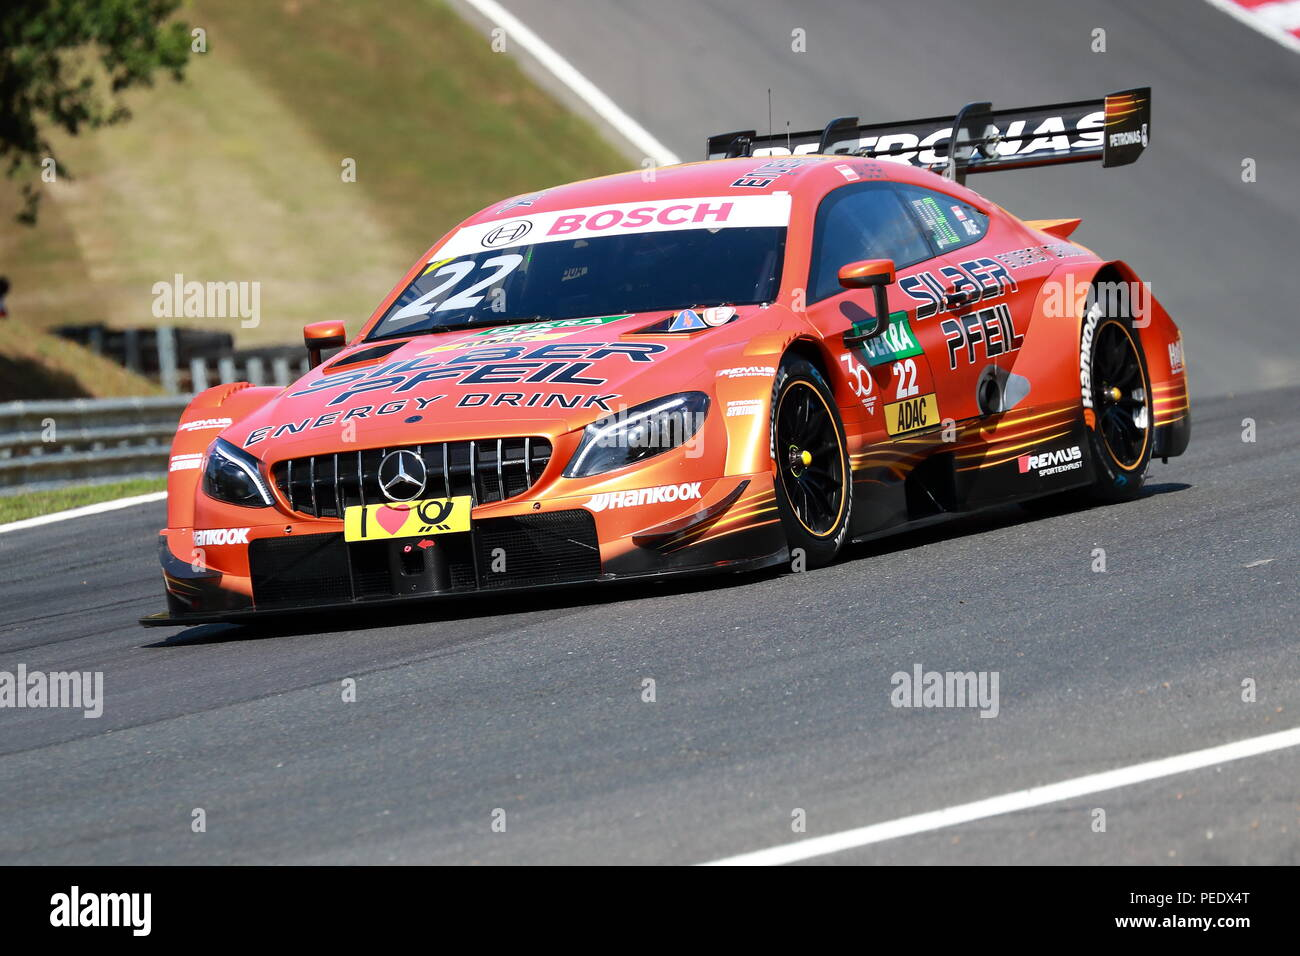 Lucas Auer in his Mercedes at the DTM Race 2018 at Brands Hatch Circuit, UK - Stock Image